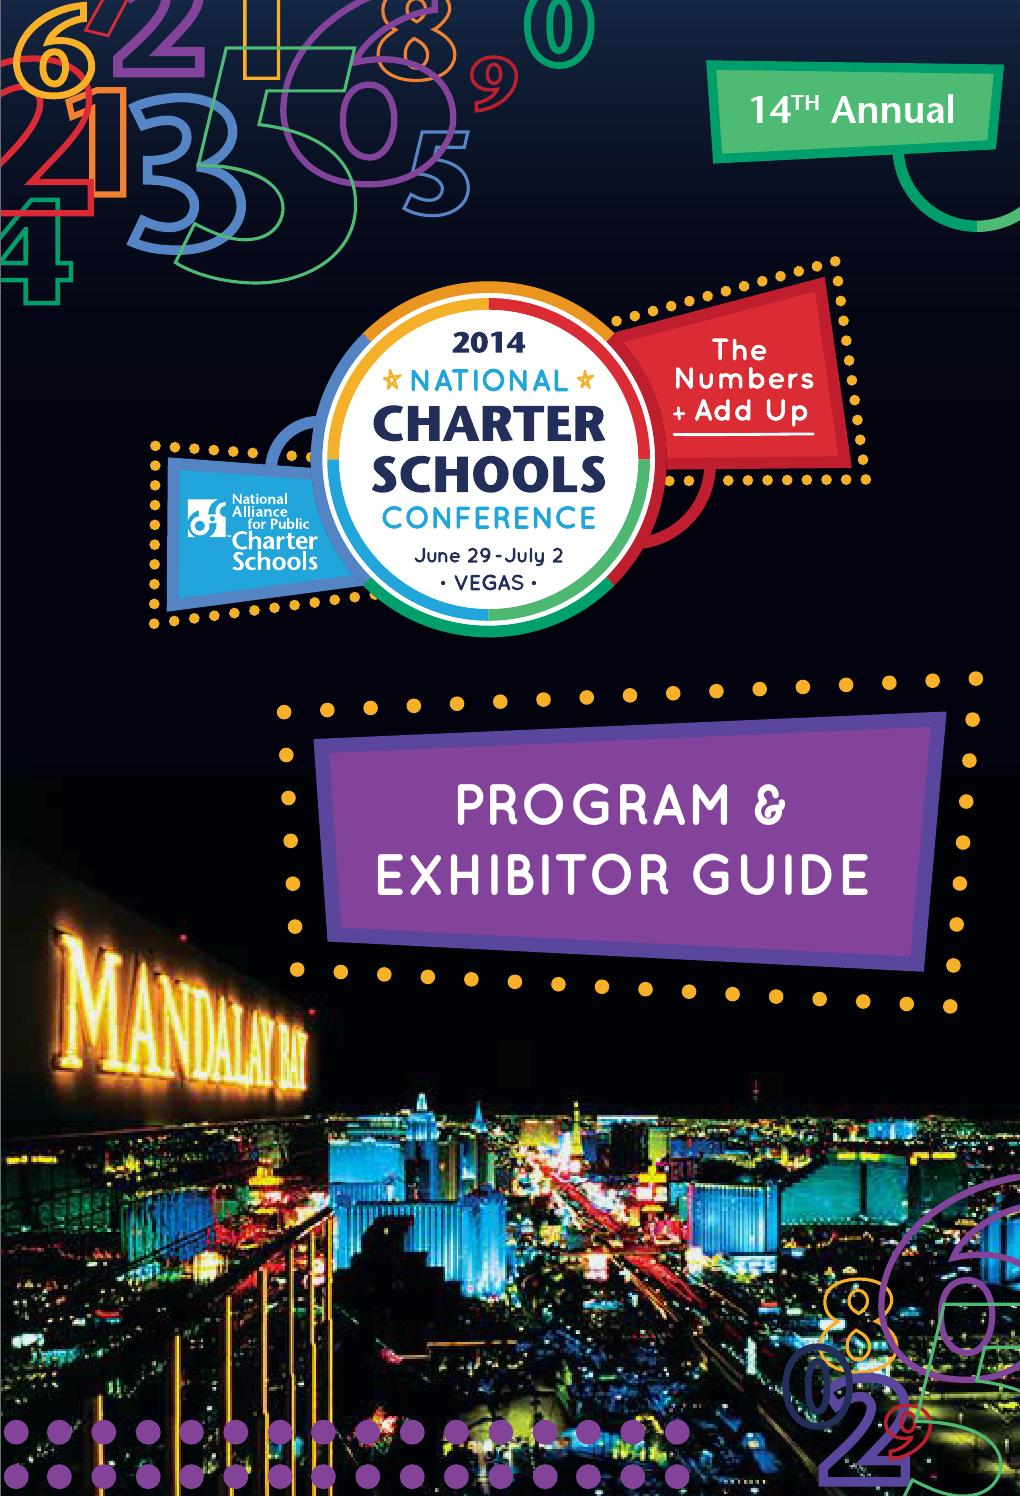 Ncsc14 program exhibitor guide by national alliance for public ncsc14 program exhibitor guide by national alliance for public charter schools issuu fandeluxe Image collections